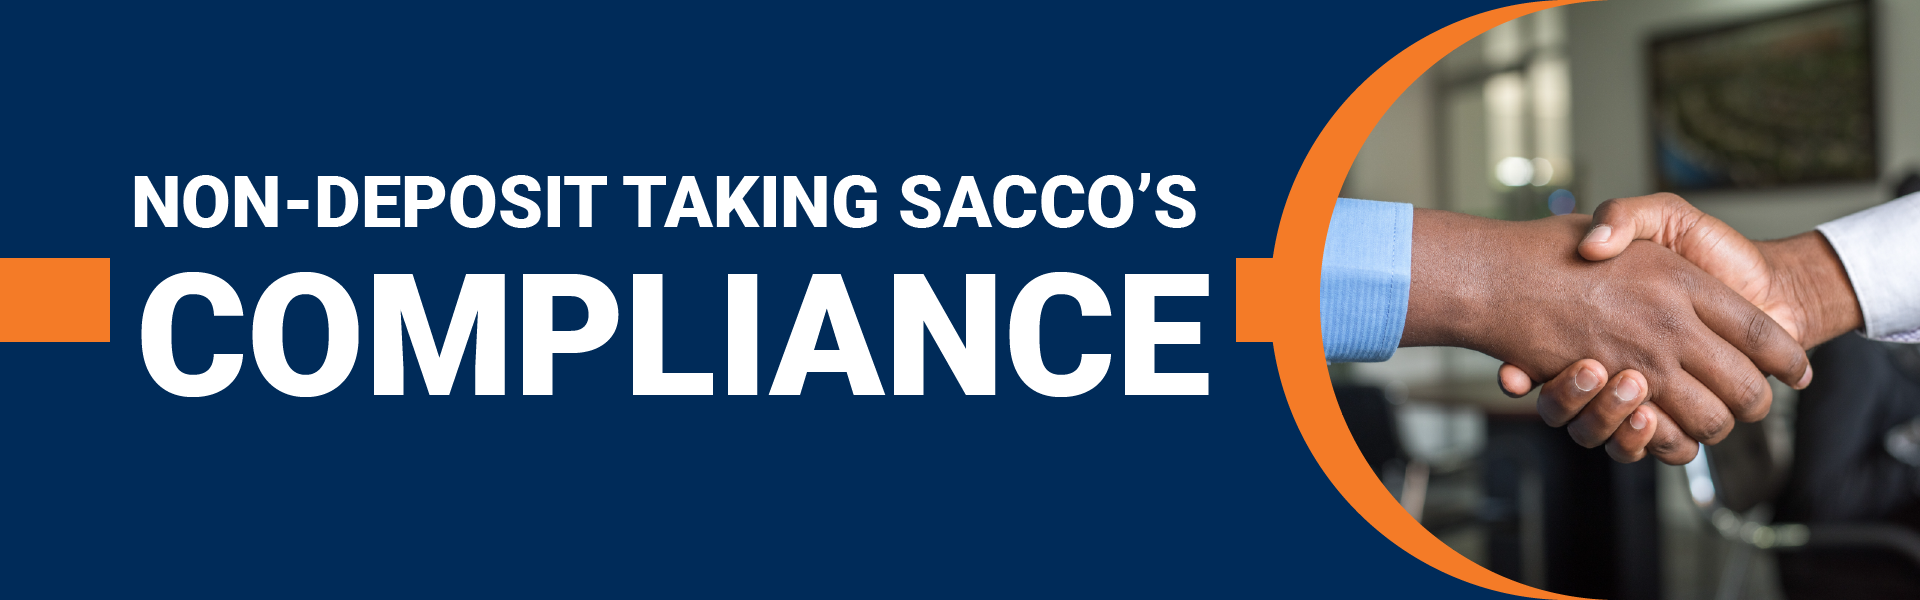 JUNE 30TH 2021 PUT AS THE DEADLINE FOR NON-DEPOSIT TAKING SACCO'S COMPLIANCE